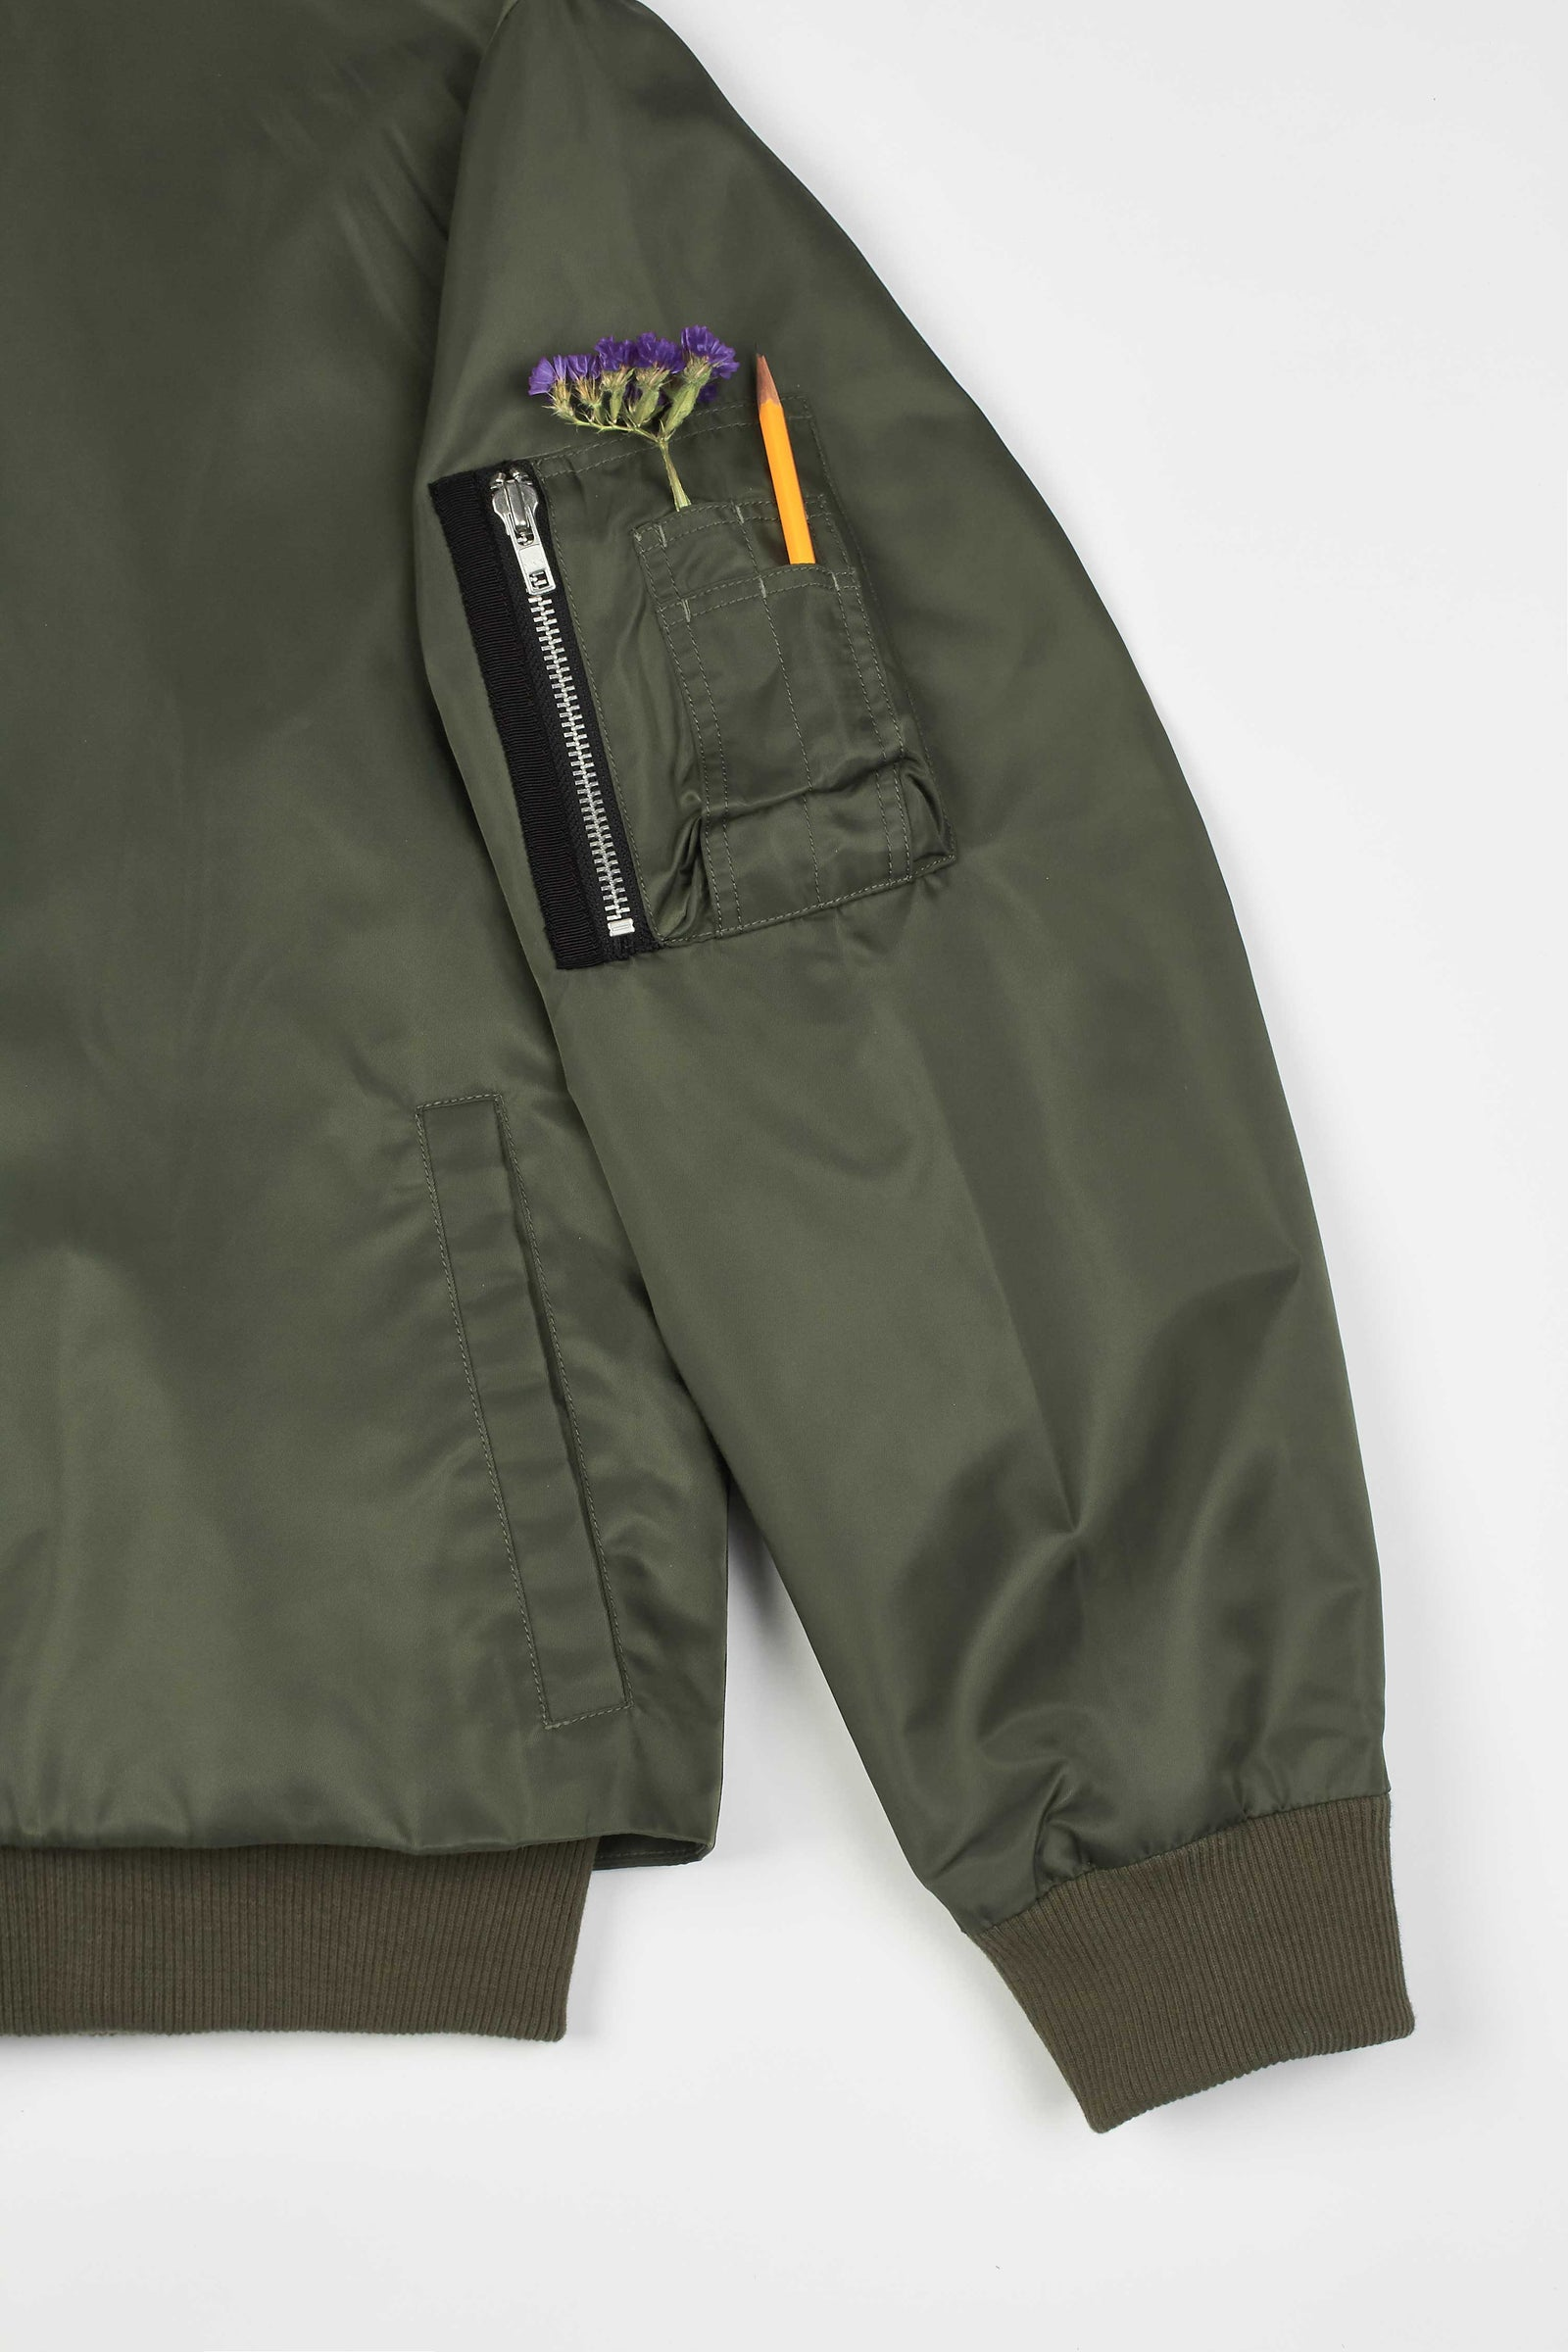 Photo of Army Green Double Layered Jeogori Bomber Jacket, number 16